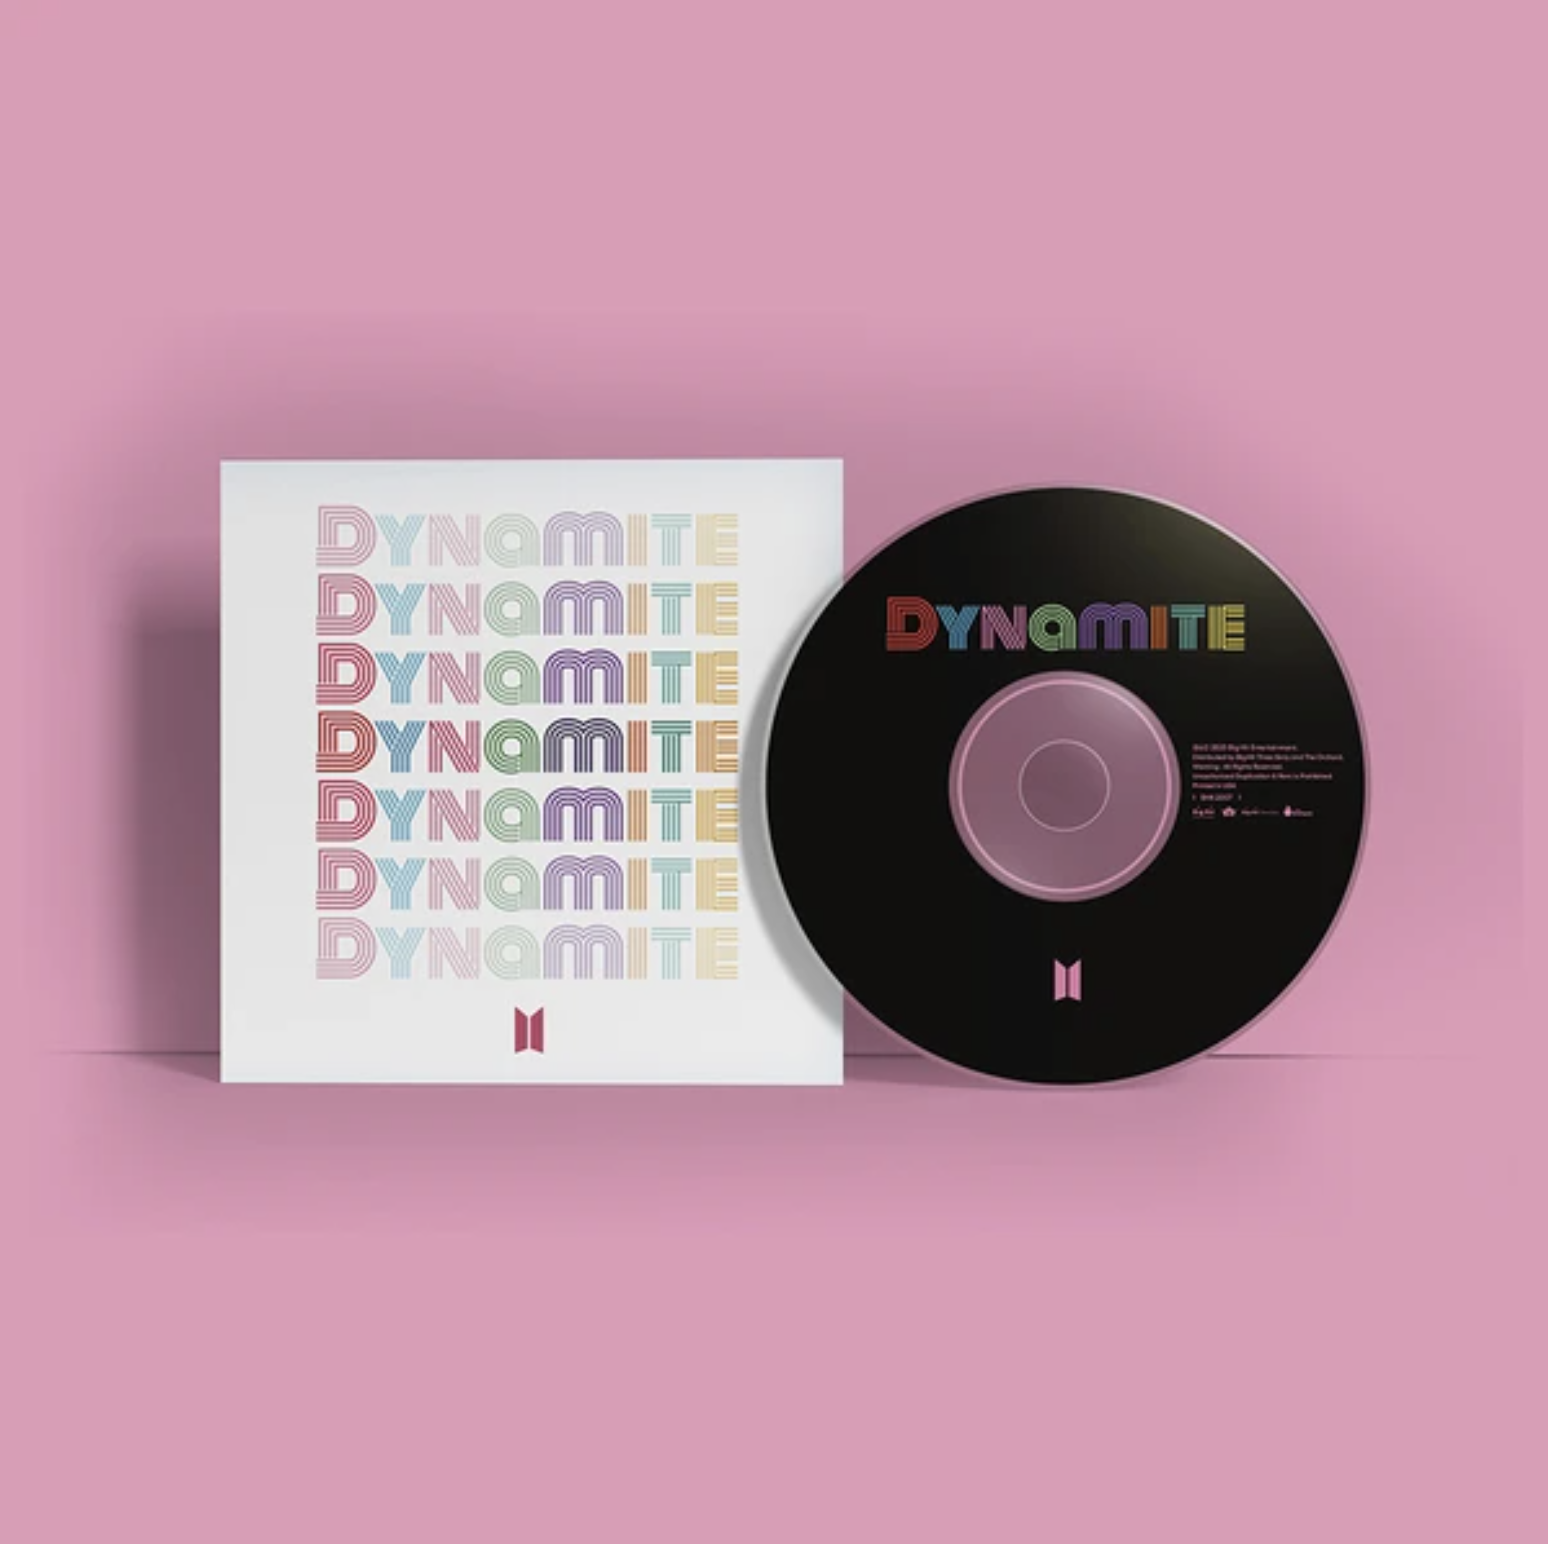 RELEASE DYNAMITE — US BTS ARMY